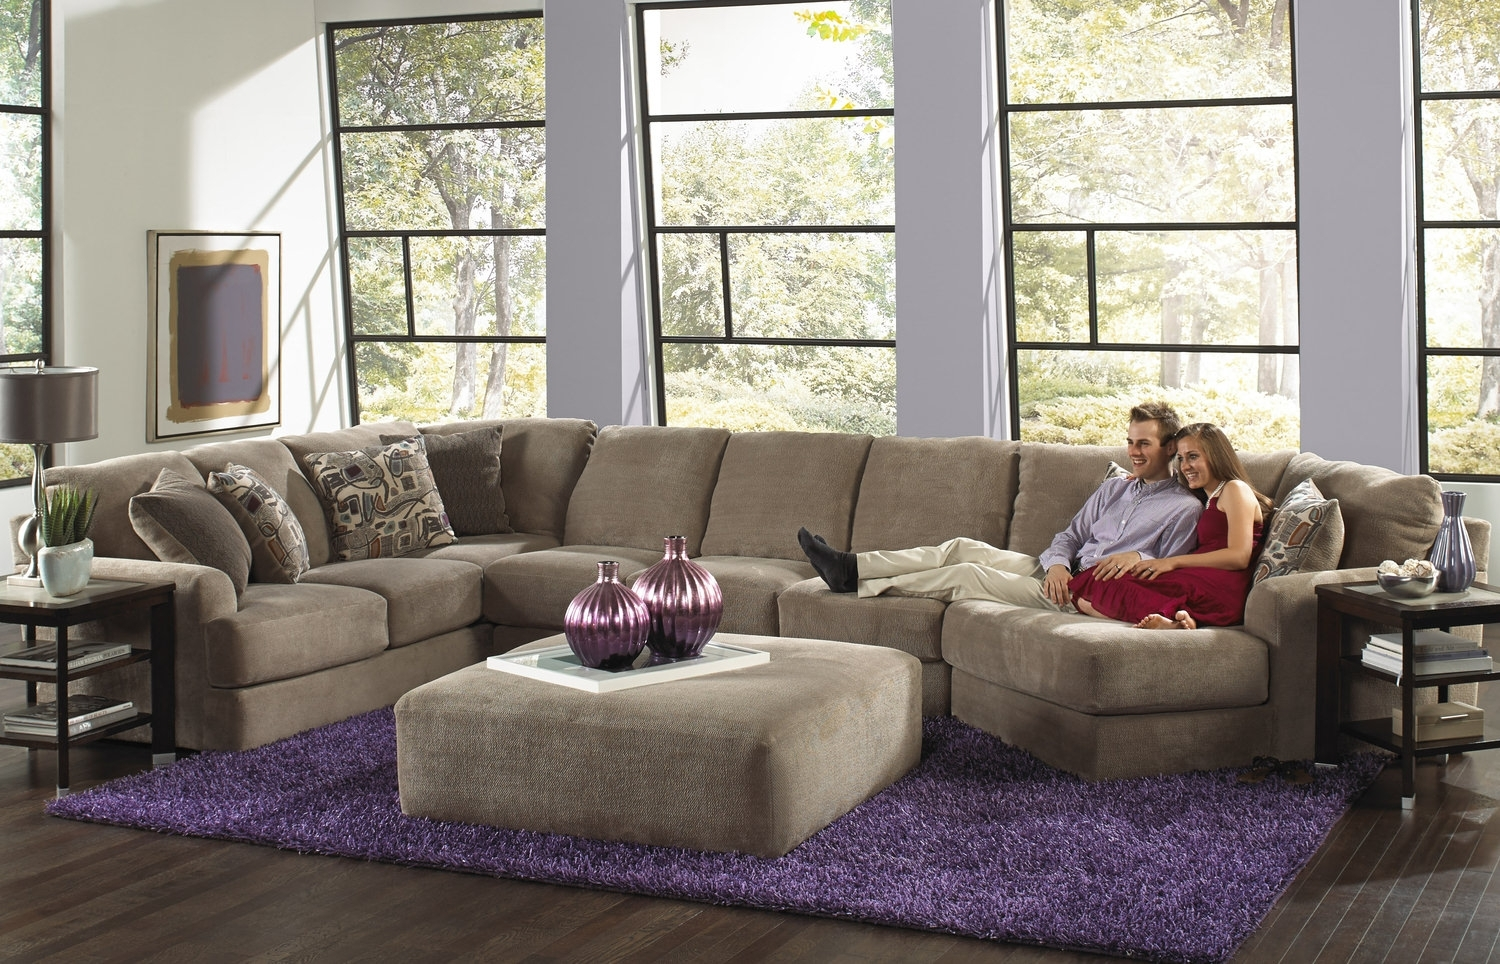 10 Inspirations Eau Claire Wi Sectional Sofas Sofa Ideas